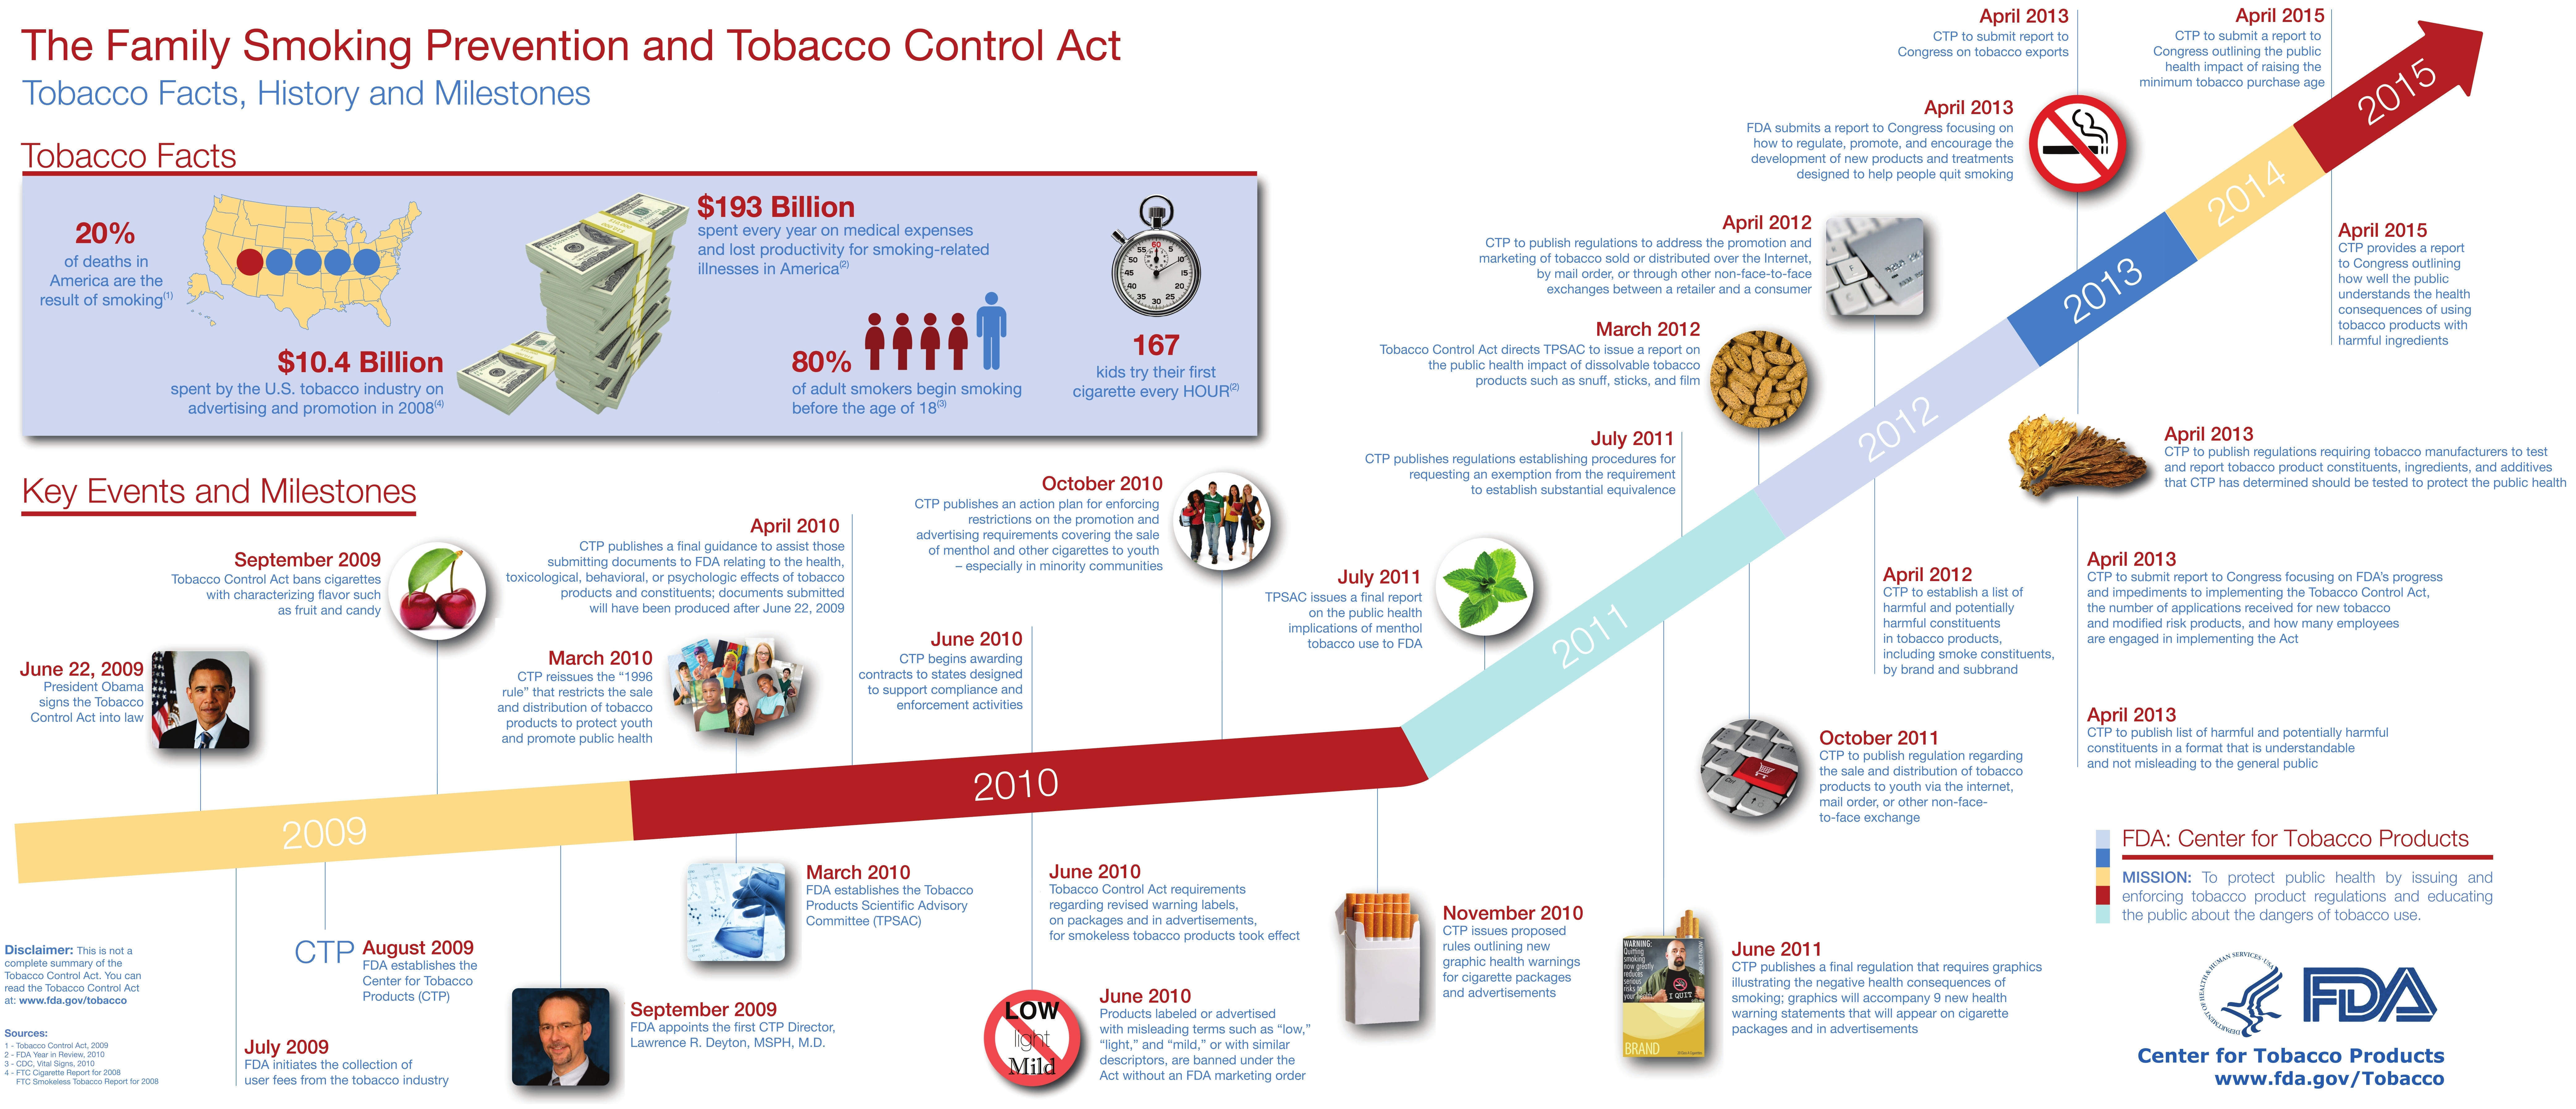 tobacco control act The tobacco control act is an important shift in how the united states is managing the tobacco epidemic that is sweeping the country and the world it is a work in progress, but the key points in how this legislation works to protect americans from manipulation by tobacco giants and tobacco-related disease and death is a solid start.